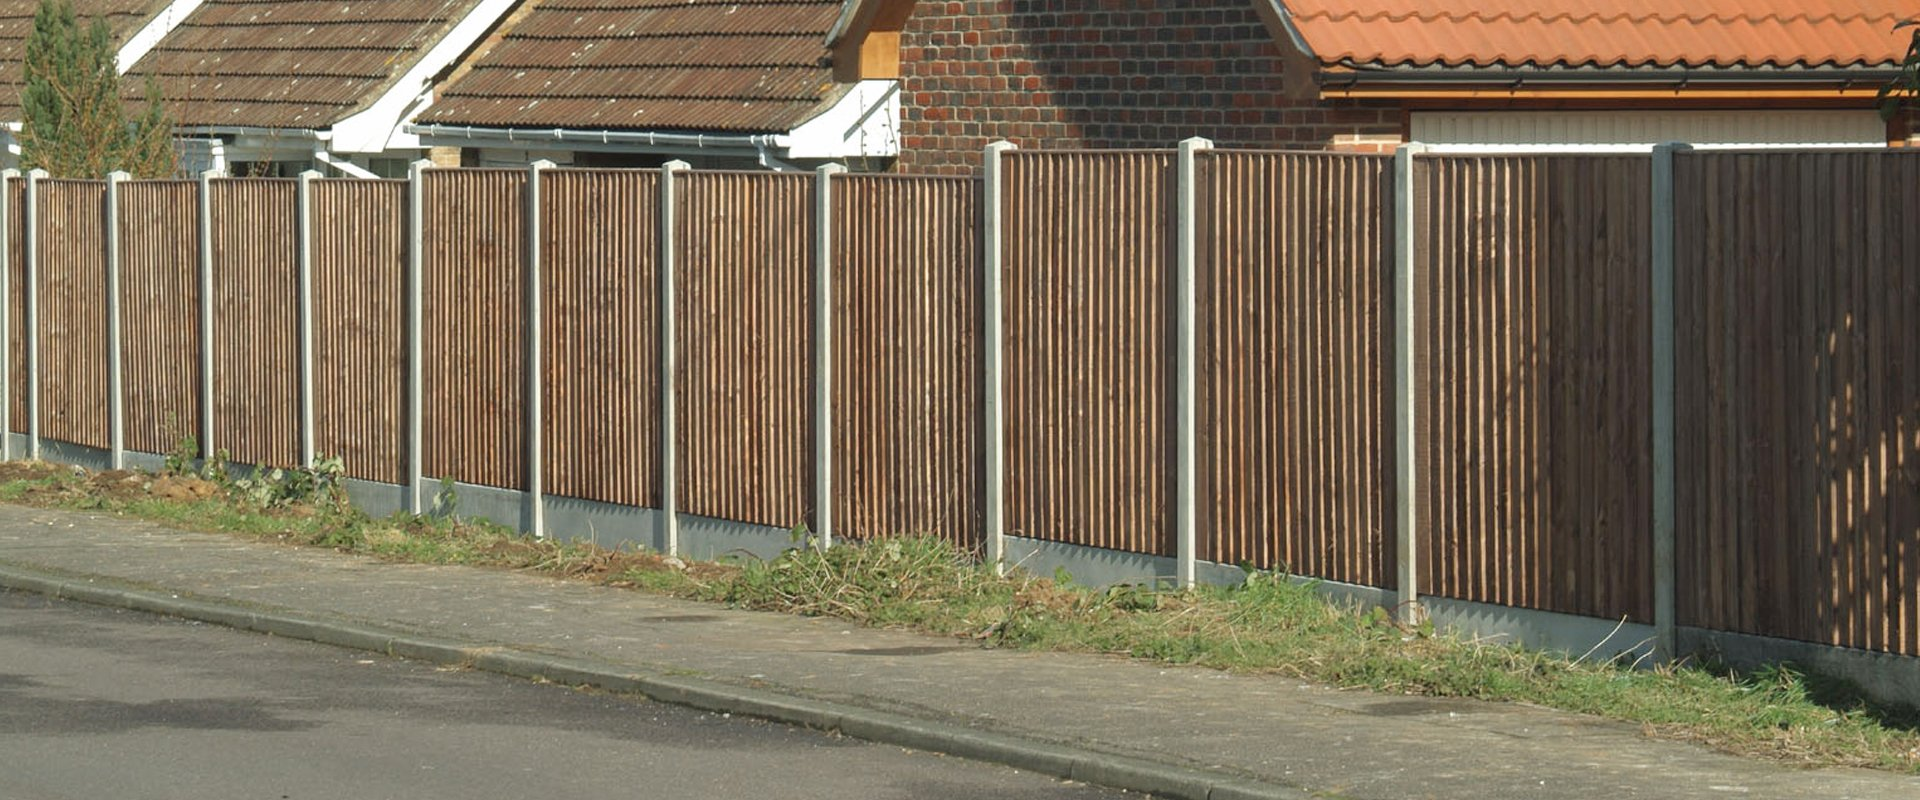 A long wooden fence with concrete posts alongside a pavement